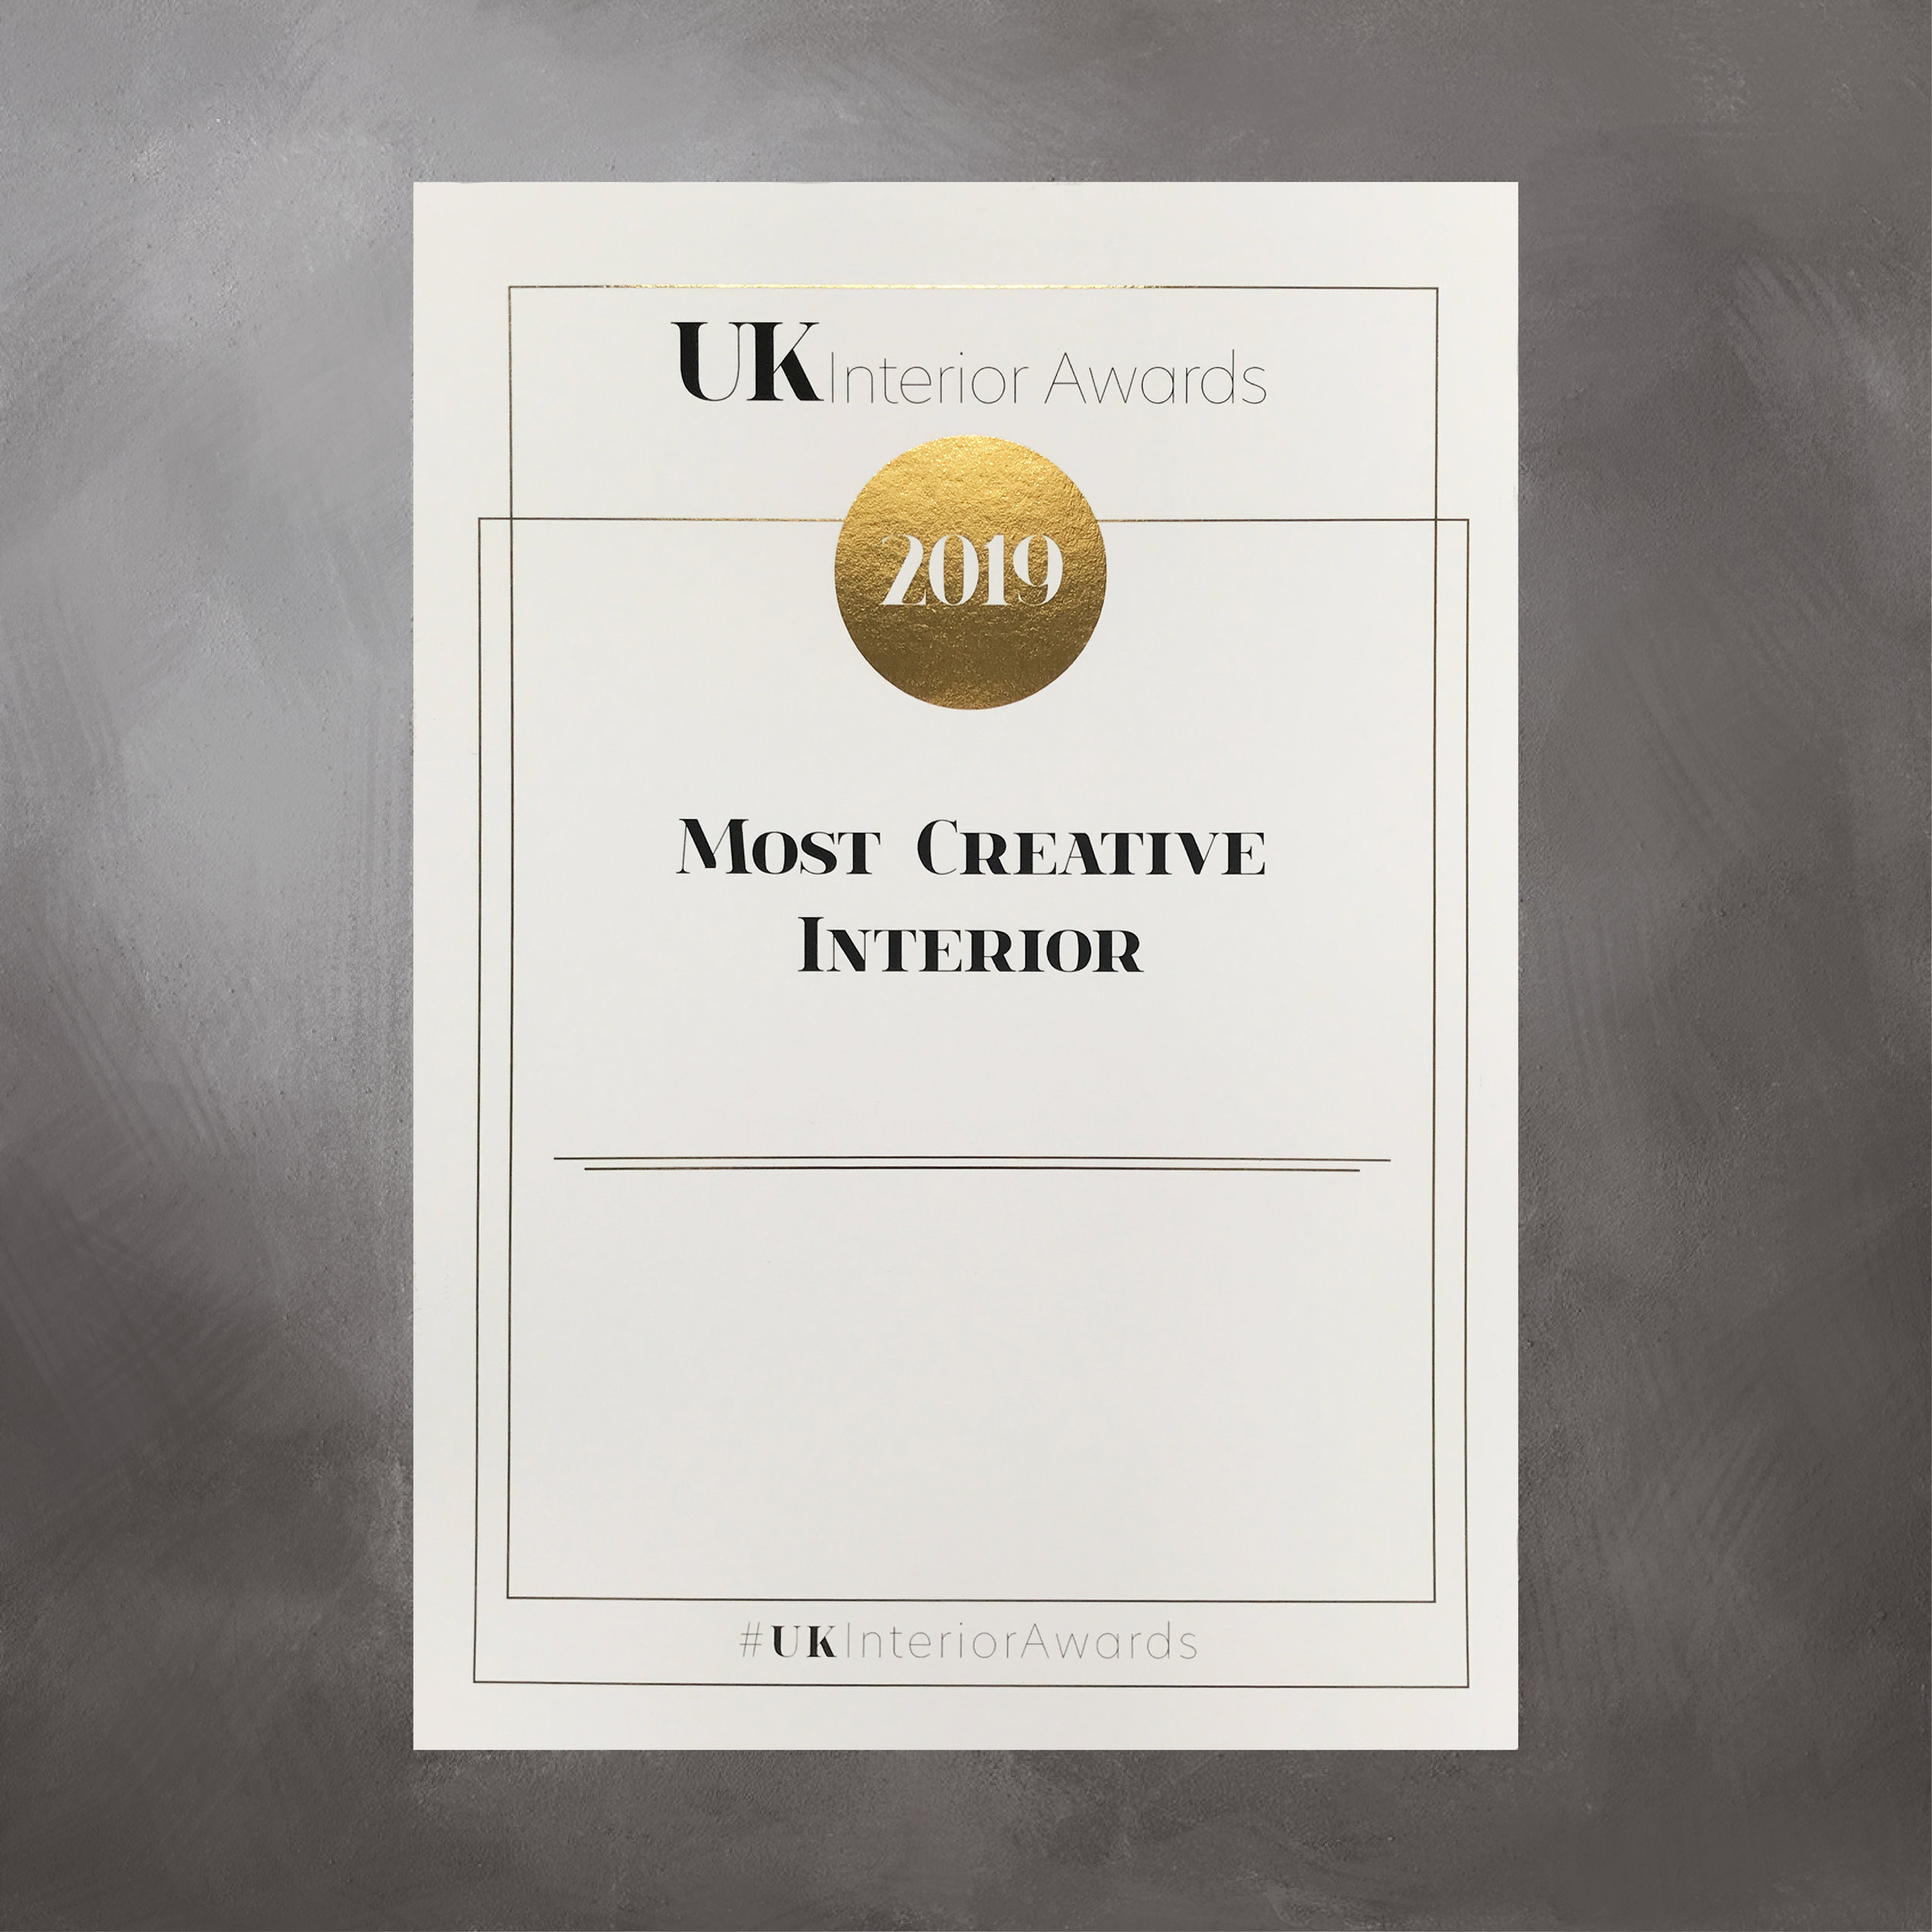 UK Interior Awards 2019 Certificates